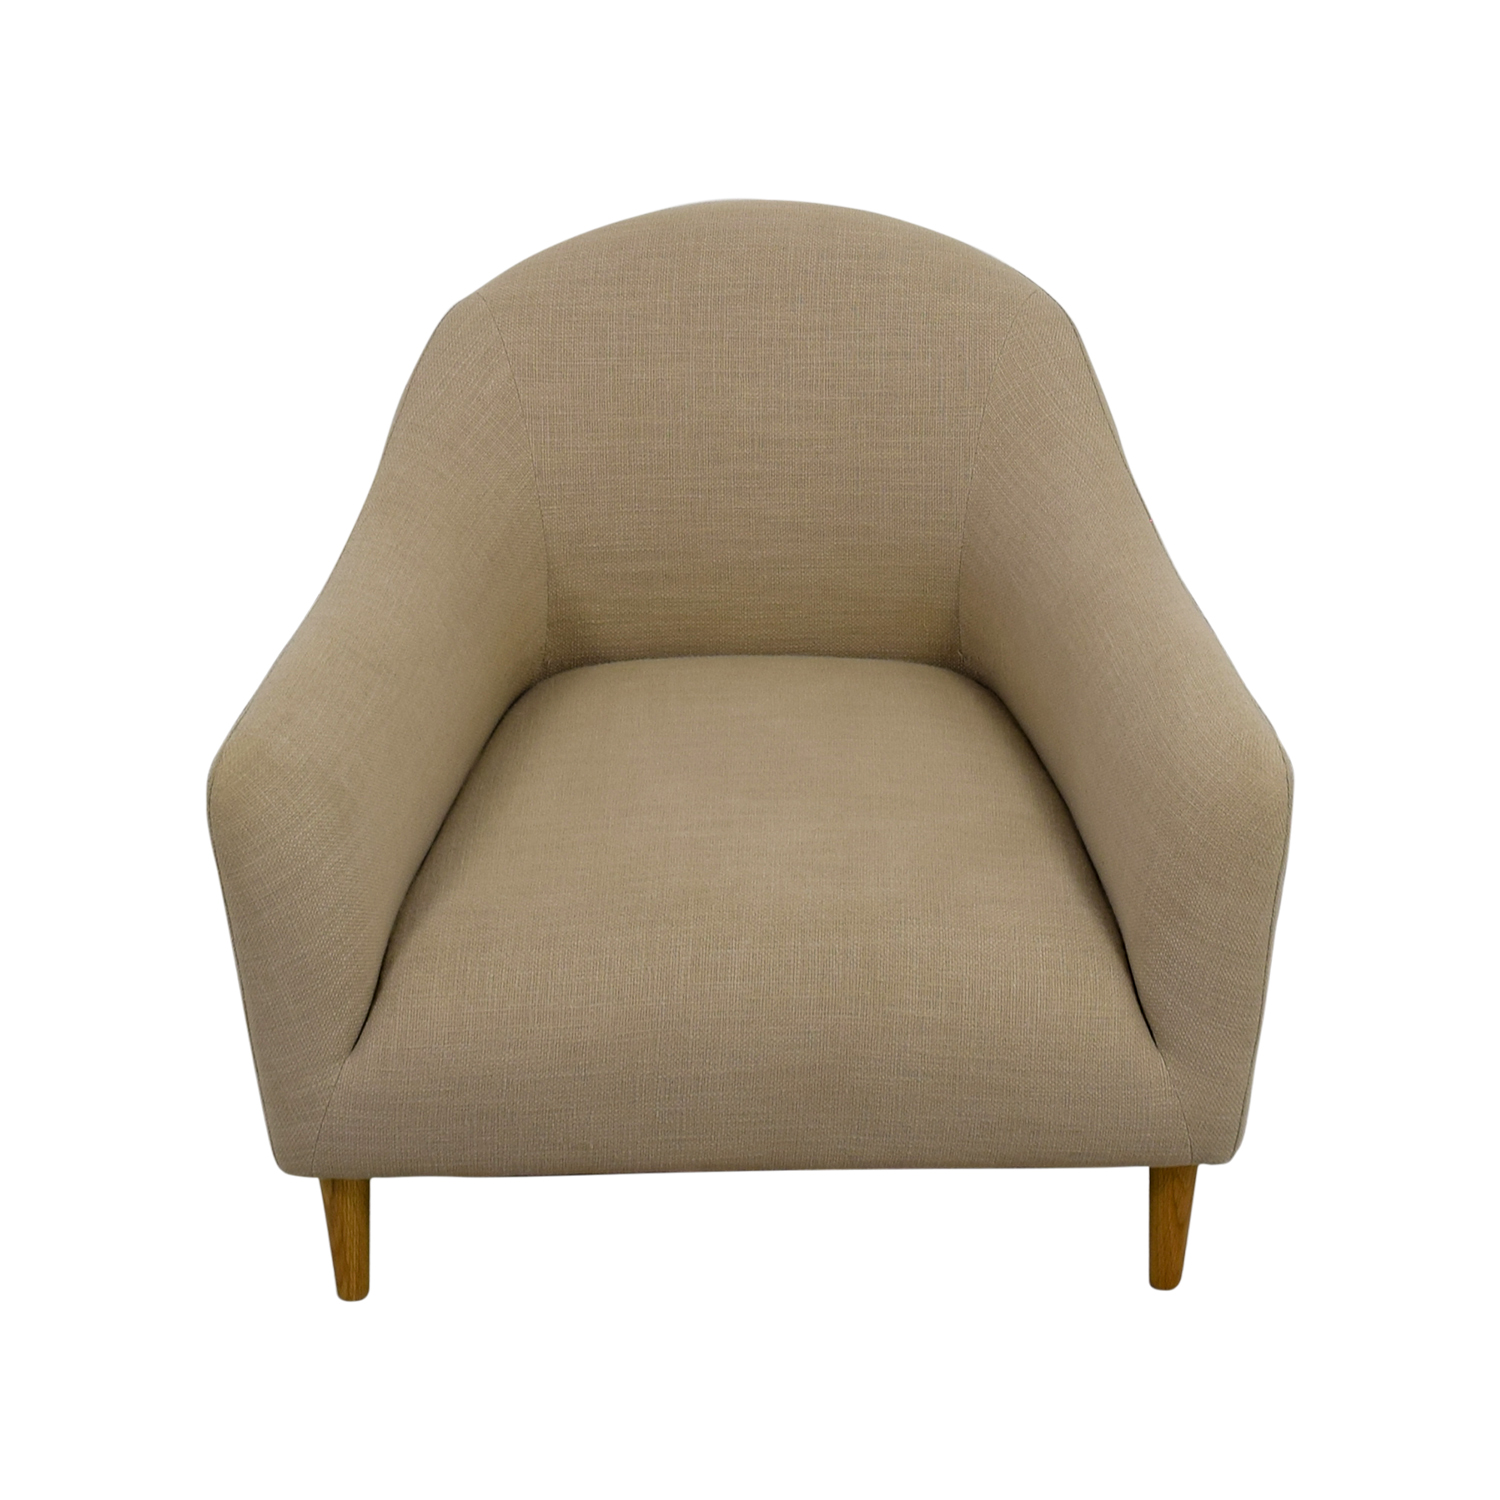 buy Crate and Barrel Crate and Barrel Pennie Beige Accent Chair online